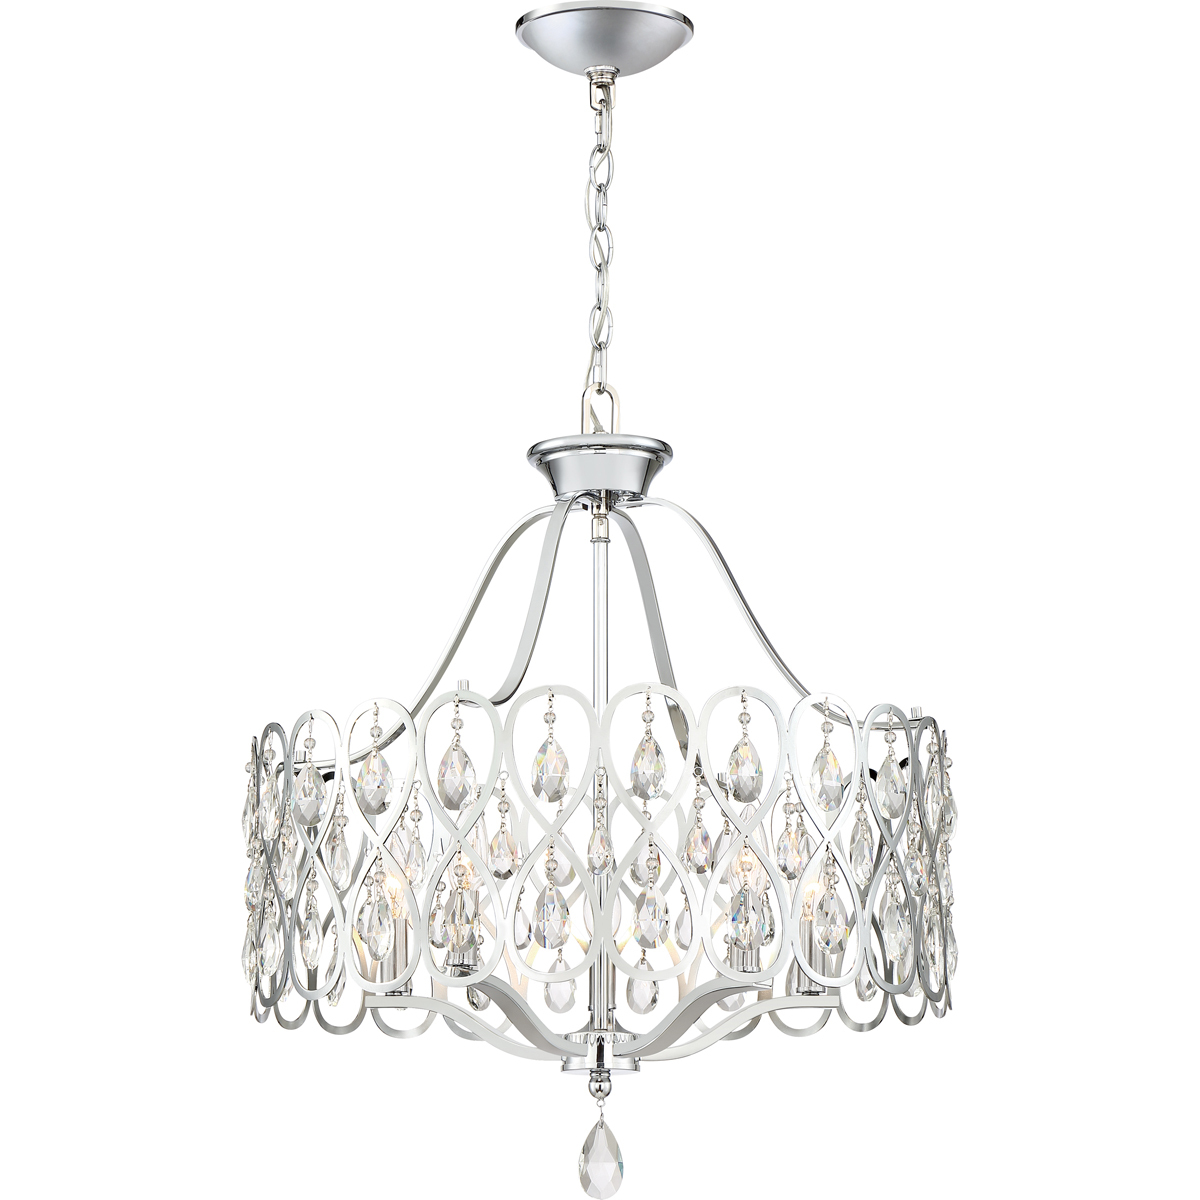 Primary image for Lulu 5-Light Chandelier in Polished Chrome